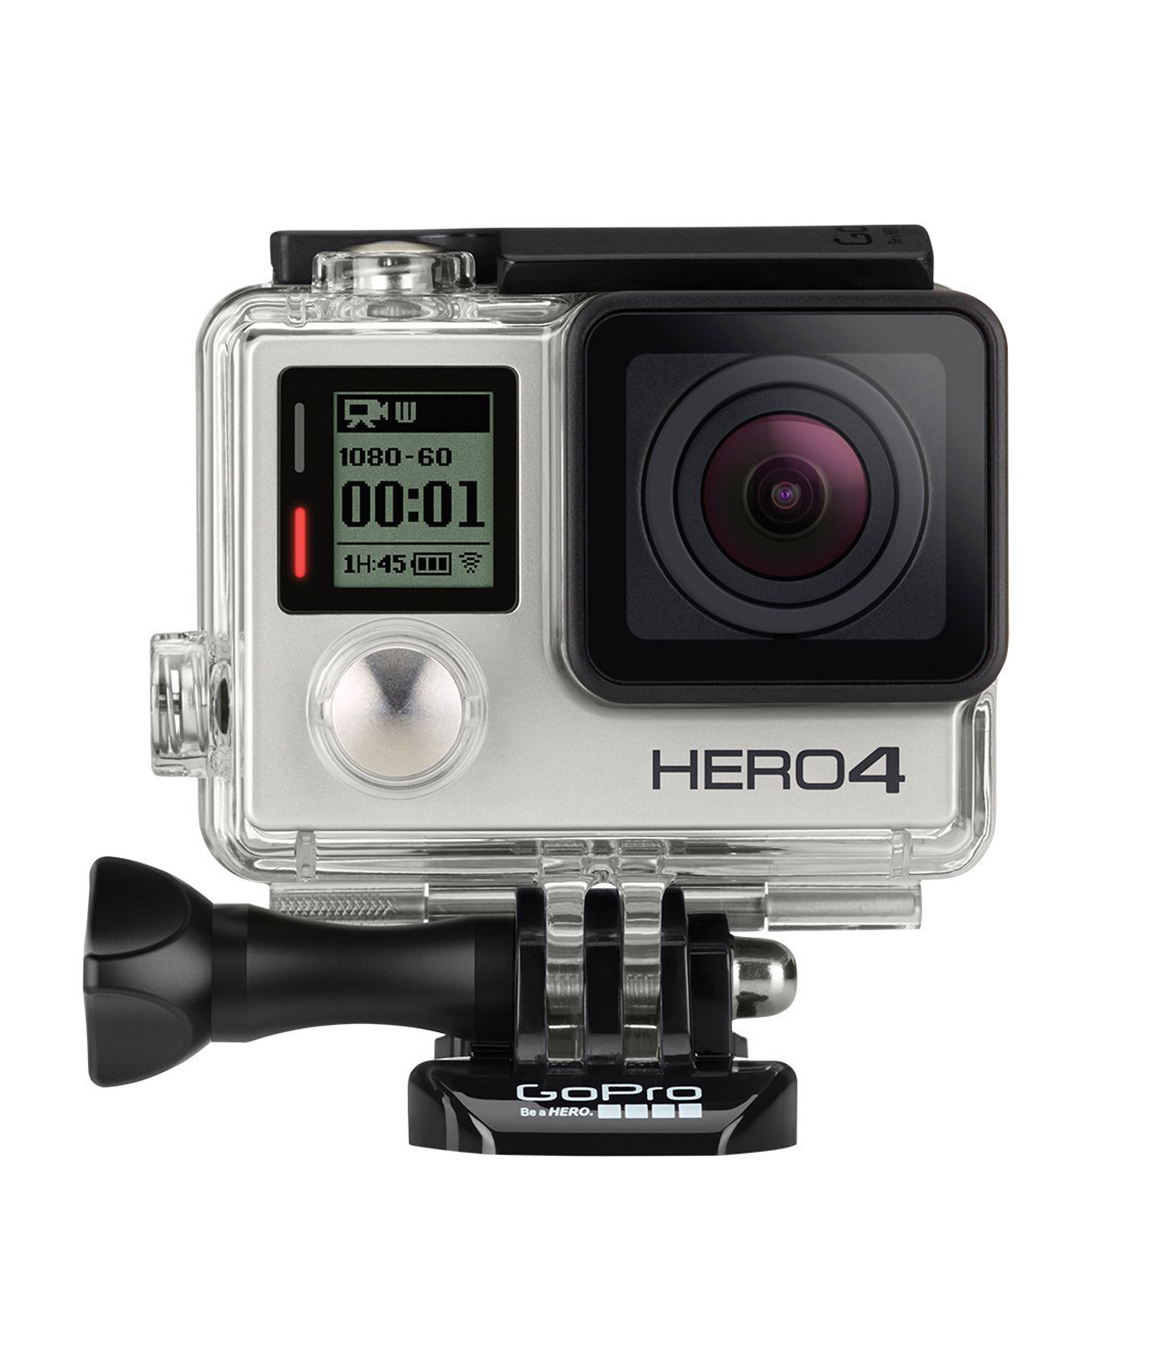 GoPro Hero4 Black Camera for Hire in NYC